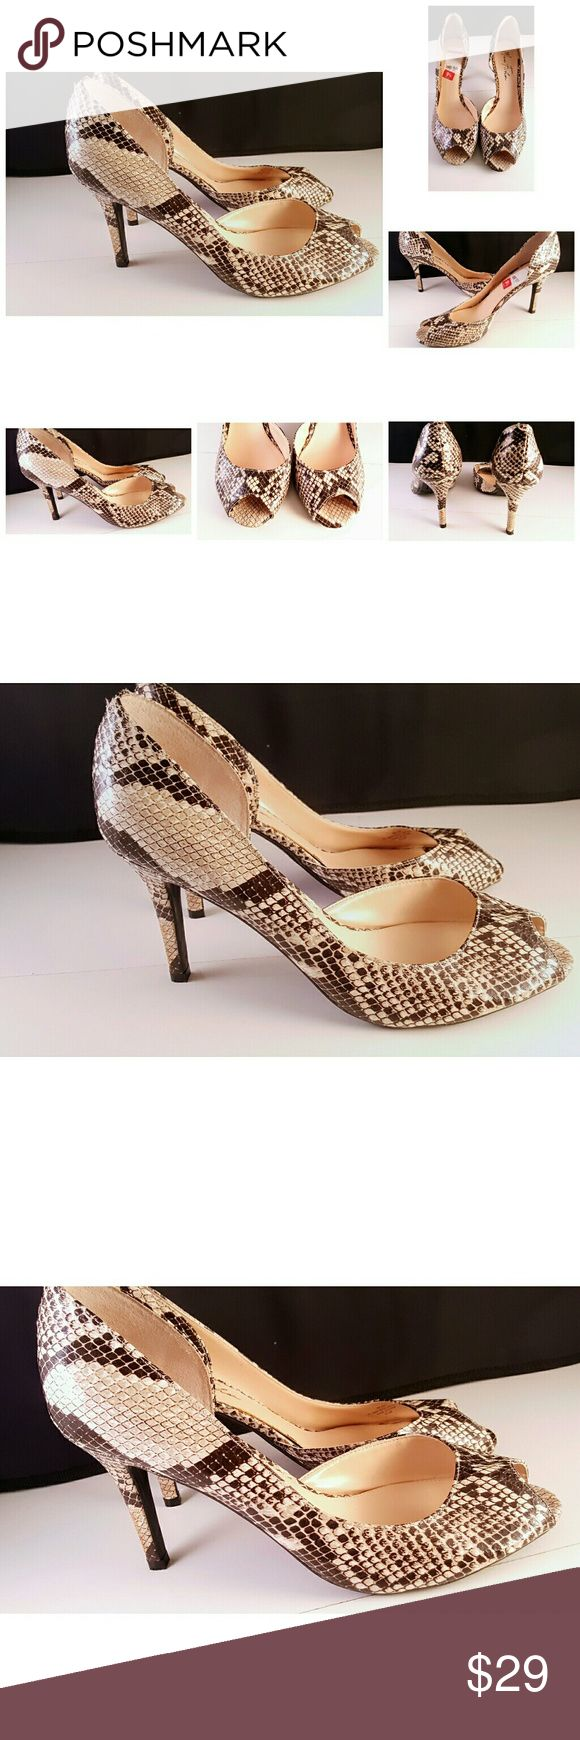 Marc Fisher Animal Print Peep Toe Stiletto Heels Marc Fisher Animal Print Peep Toe Stiletto Heels Women's Size 9.5 Cream Brown  Excellent Condition  Condition Rank 9.5 - Store Display May have been tried on but not purchased. Thanks We Ship Fast Marc Fisher Shoes Heels